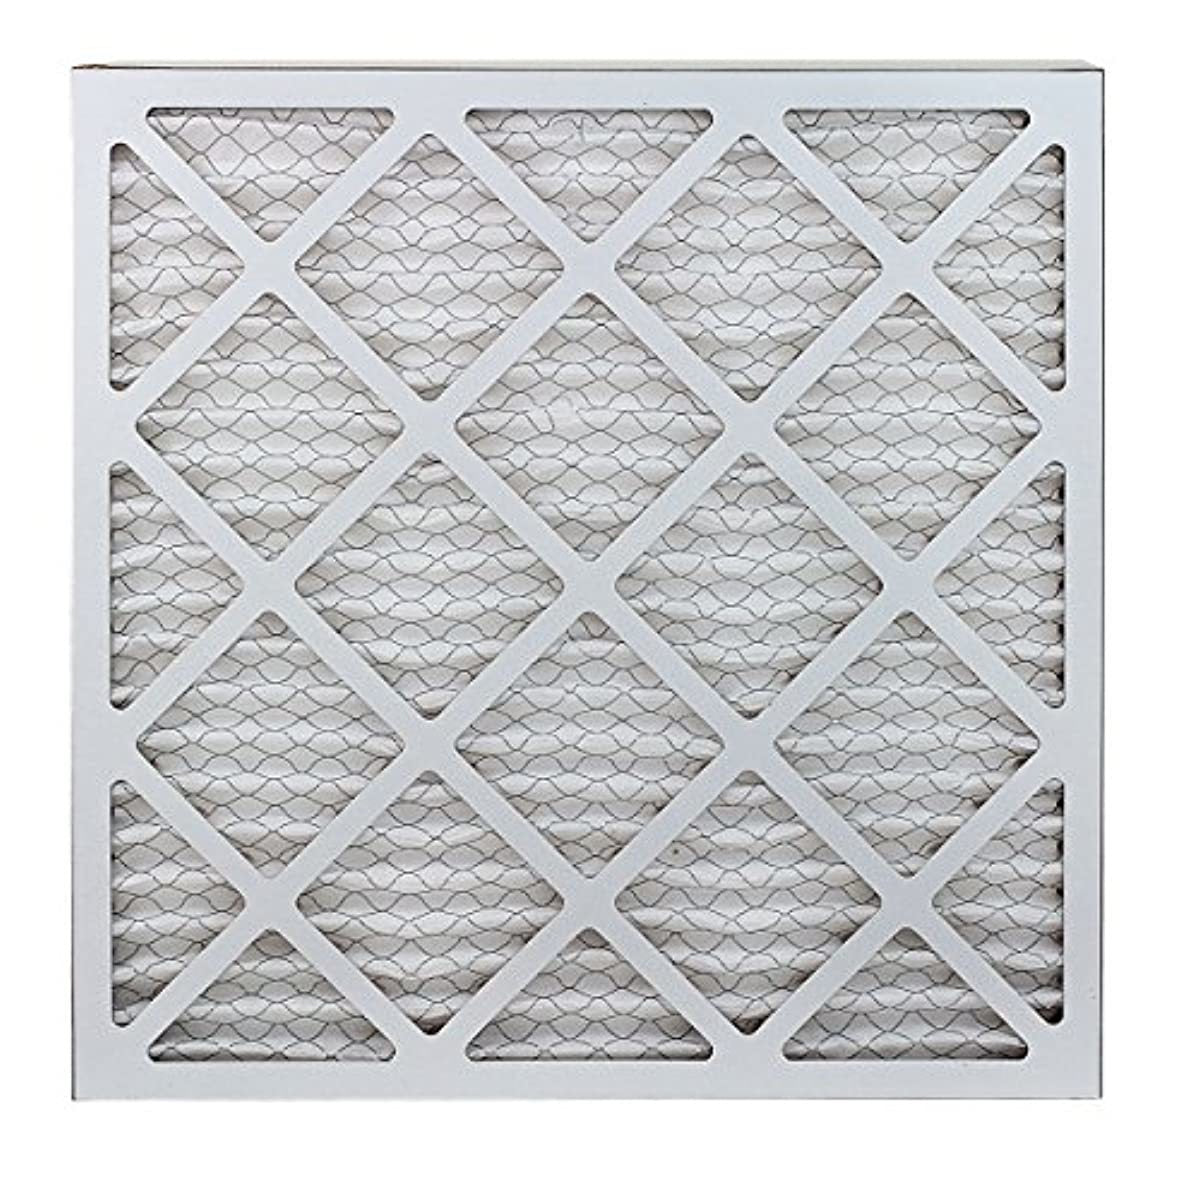 FilterBuy 20x20x1 MERV 13 Pleated AC Furnace Air Filter, (Pack of 6 Filters), 20x20x1 – Platinum